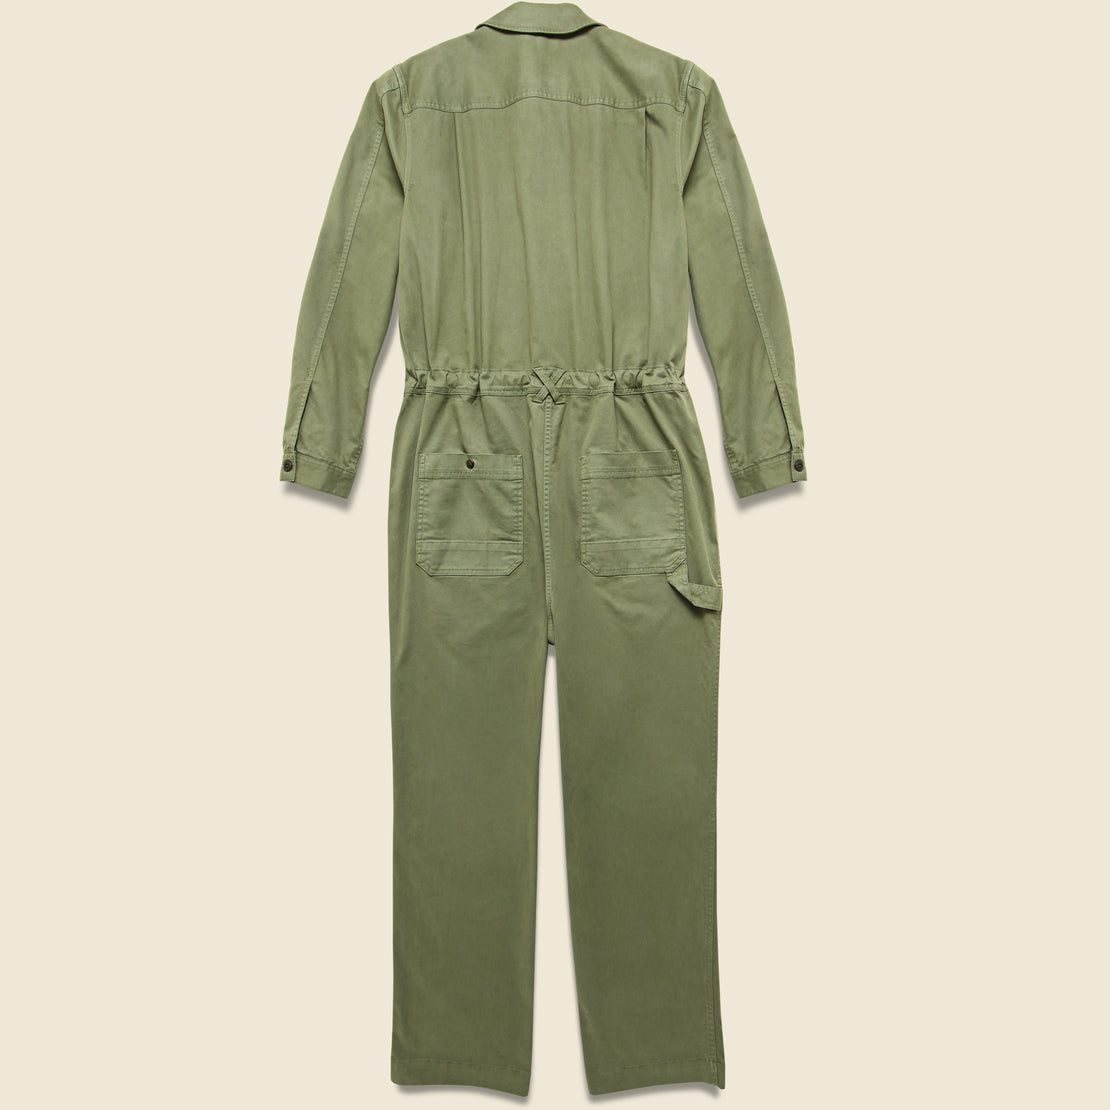 Unisex Chino Jumpsuit - Military Green